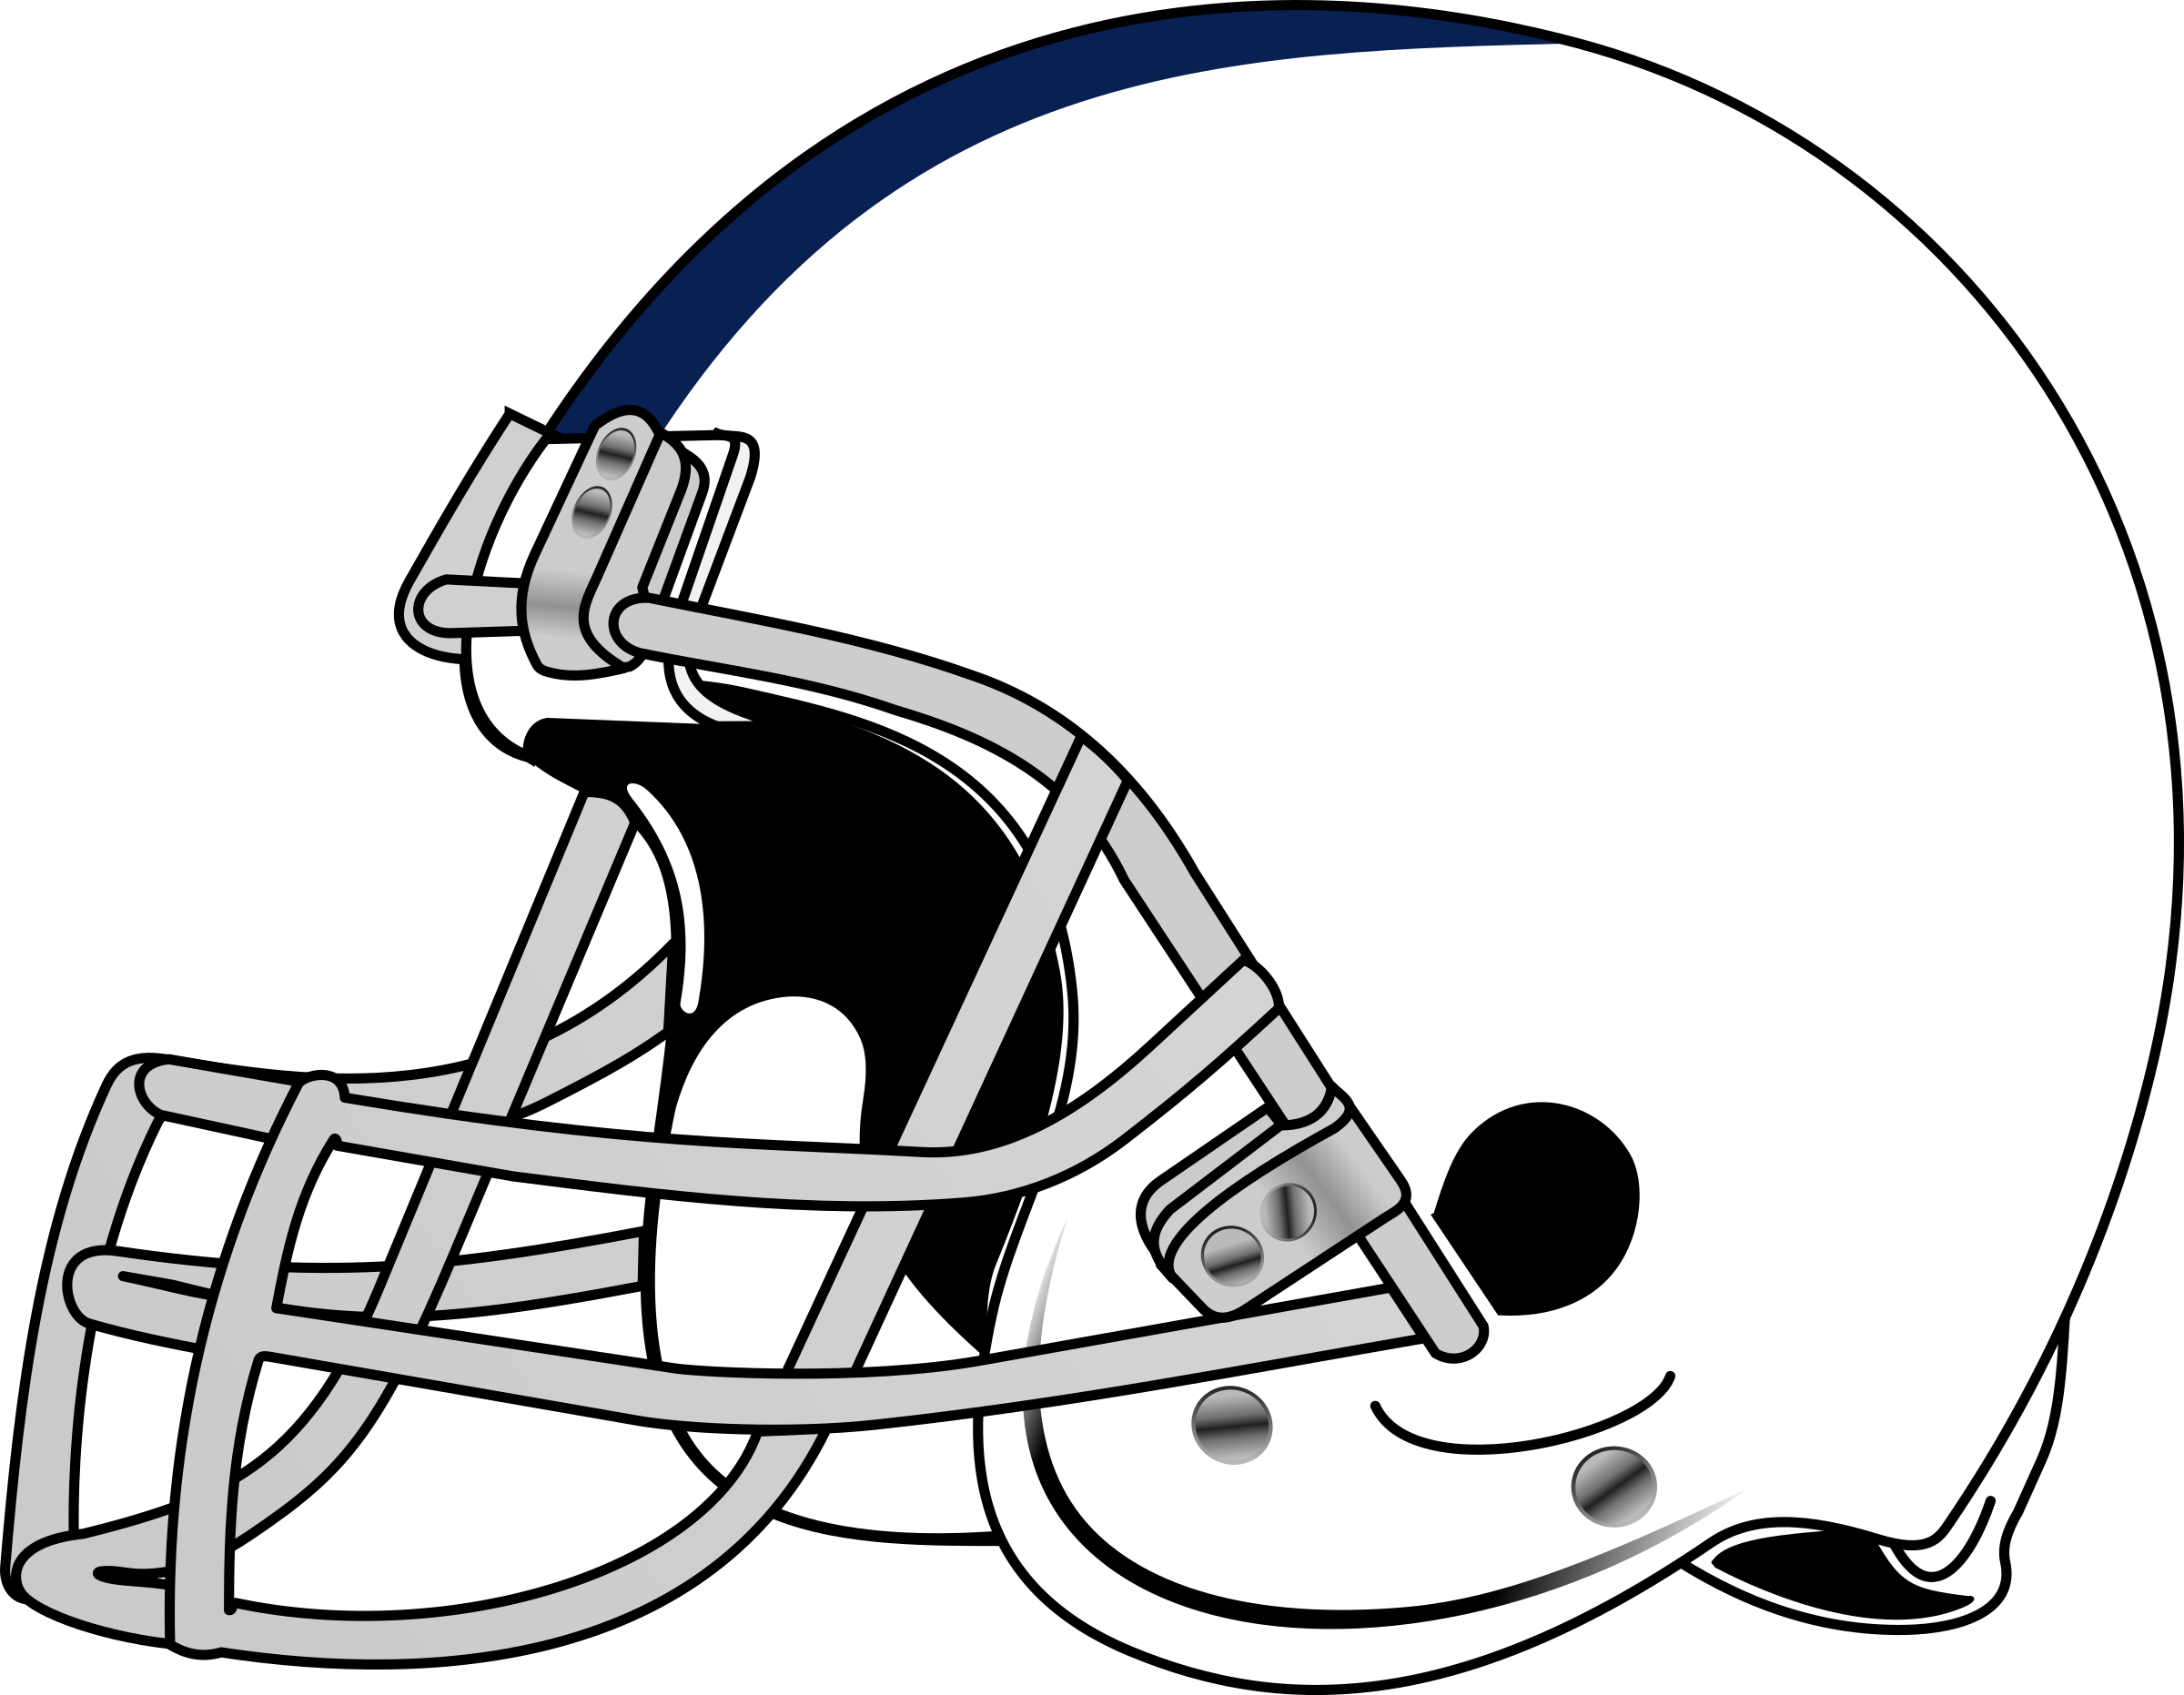 Players clipart line art football. Player black and white